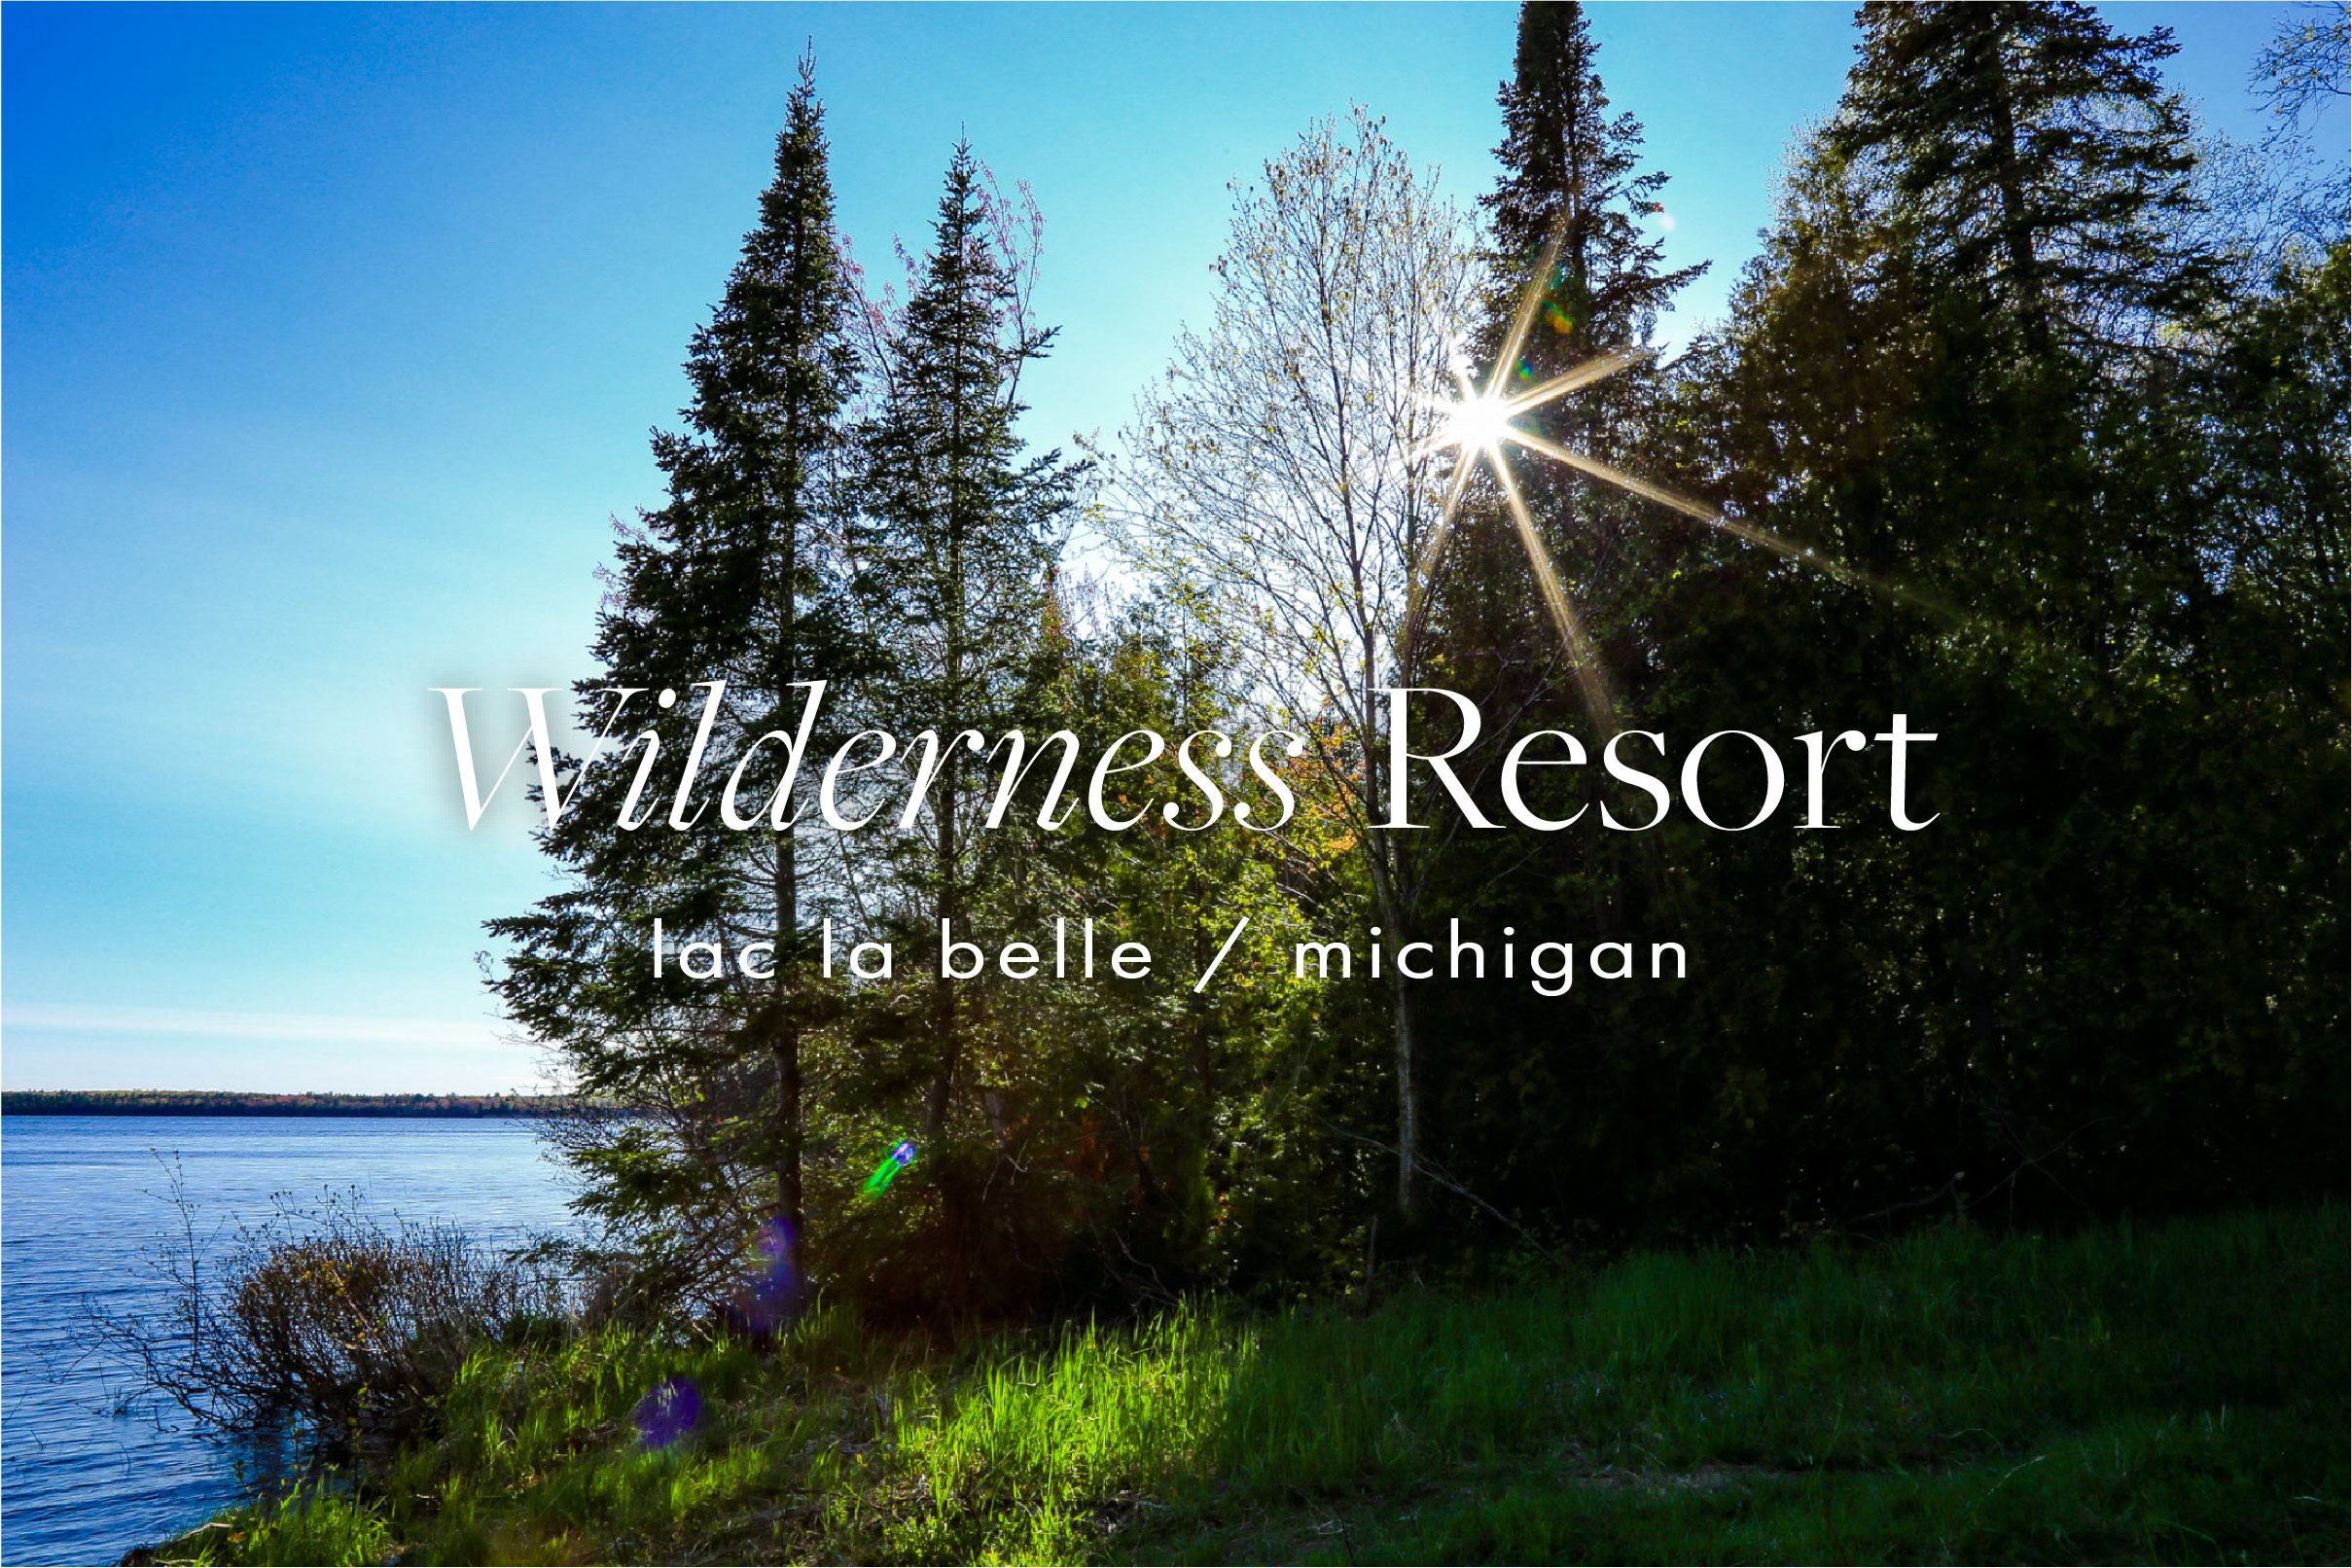 New website of the Wilderness Resort in Lac La Belle Michigan